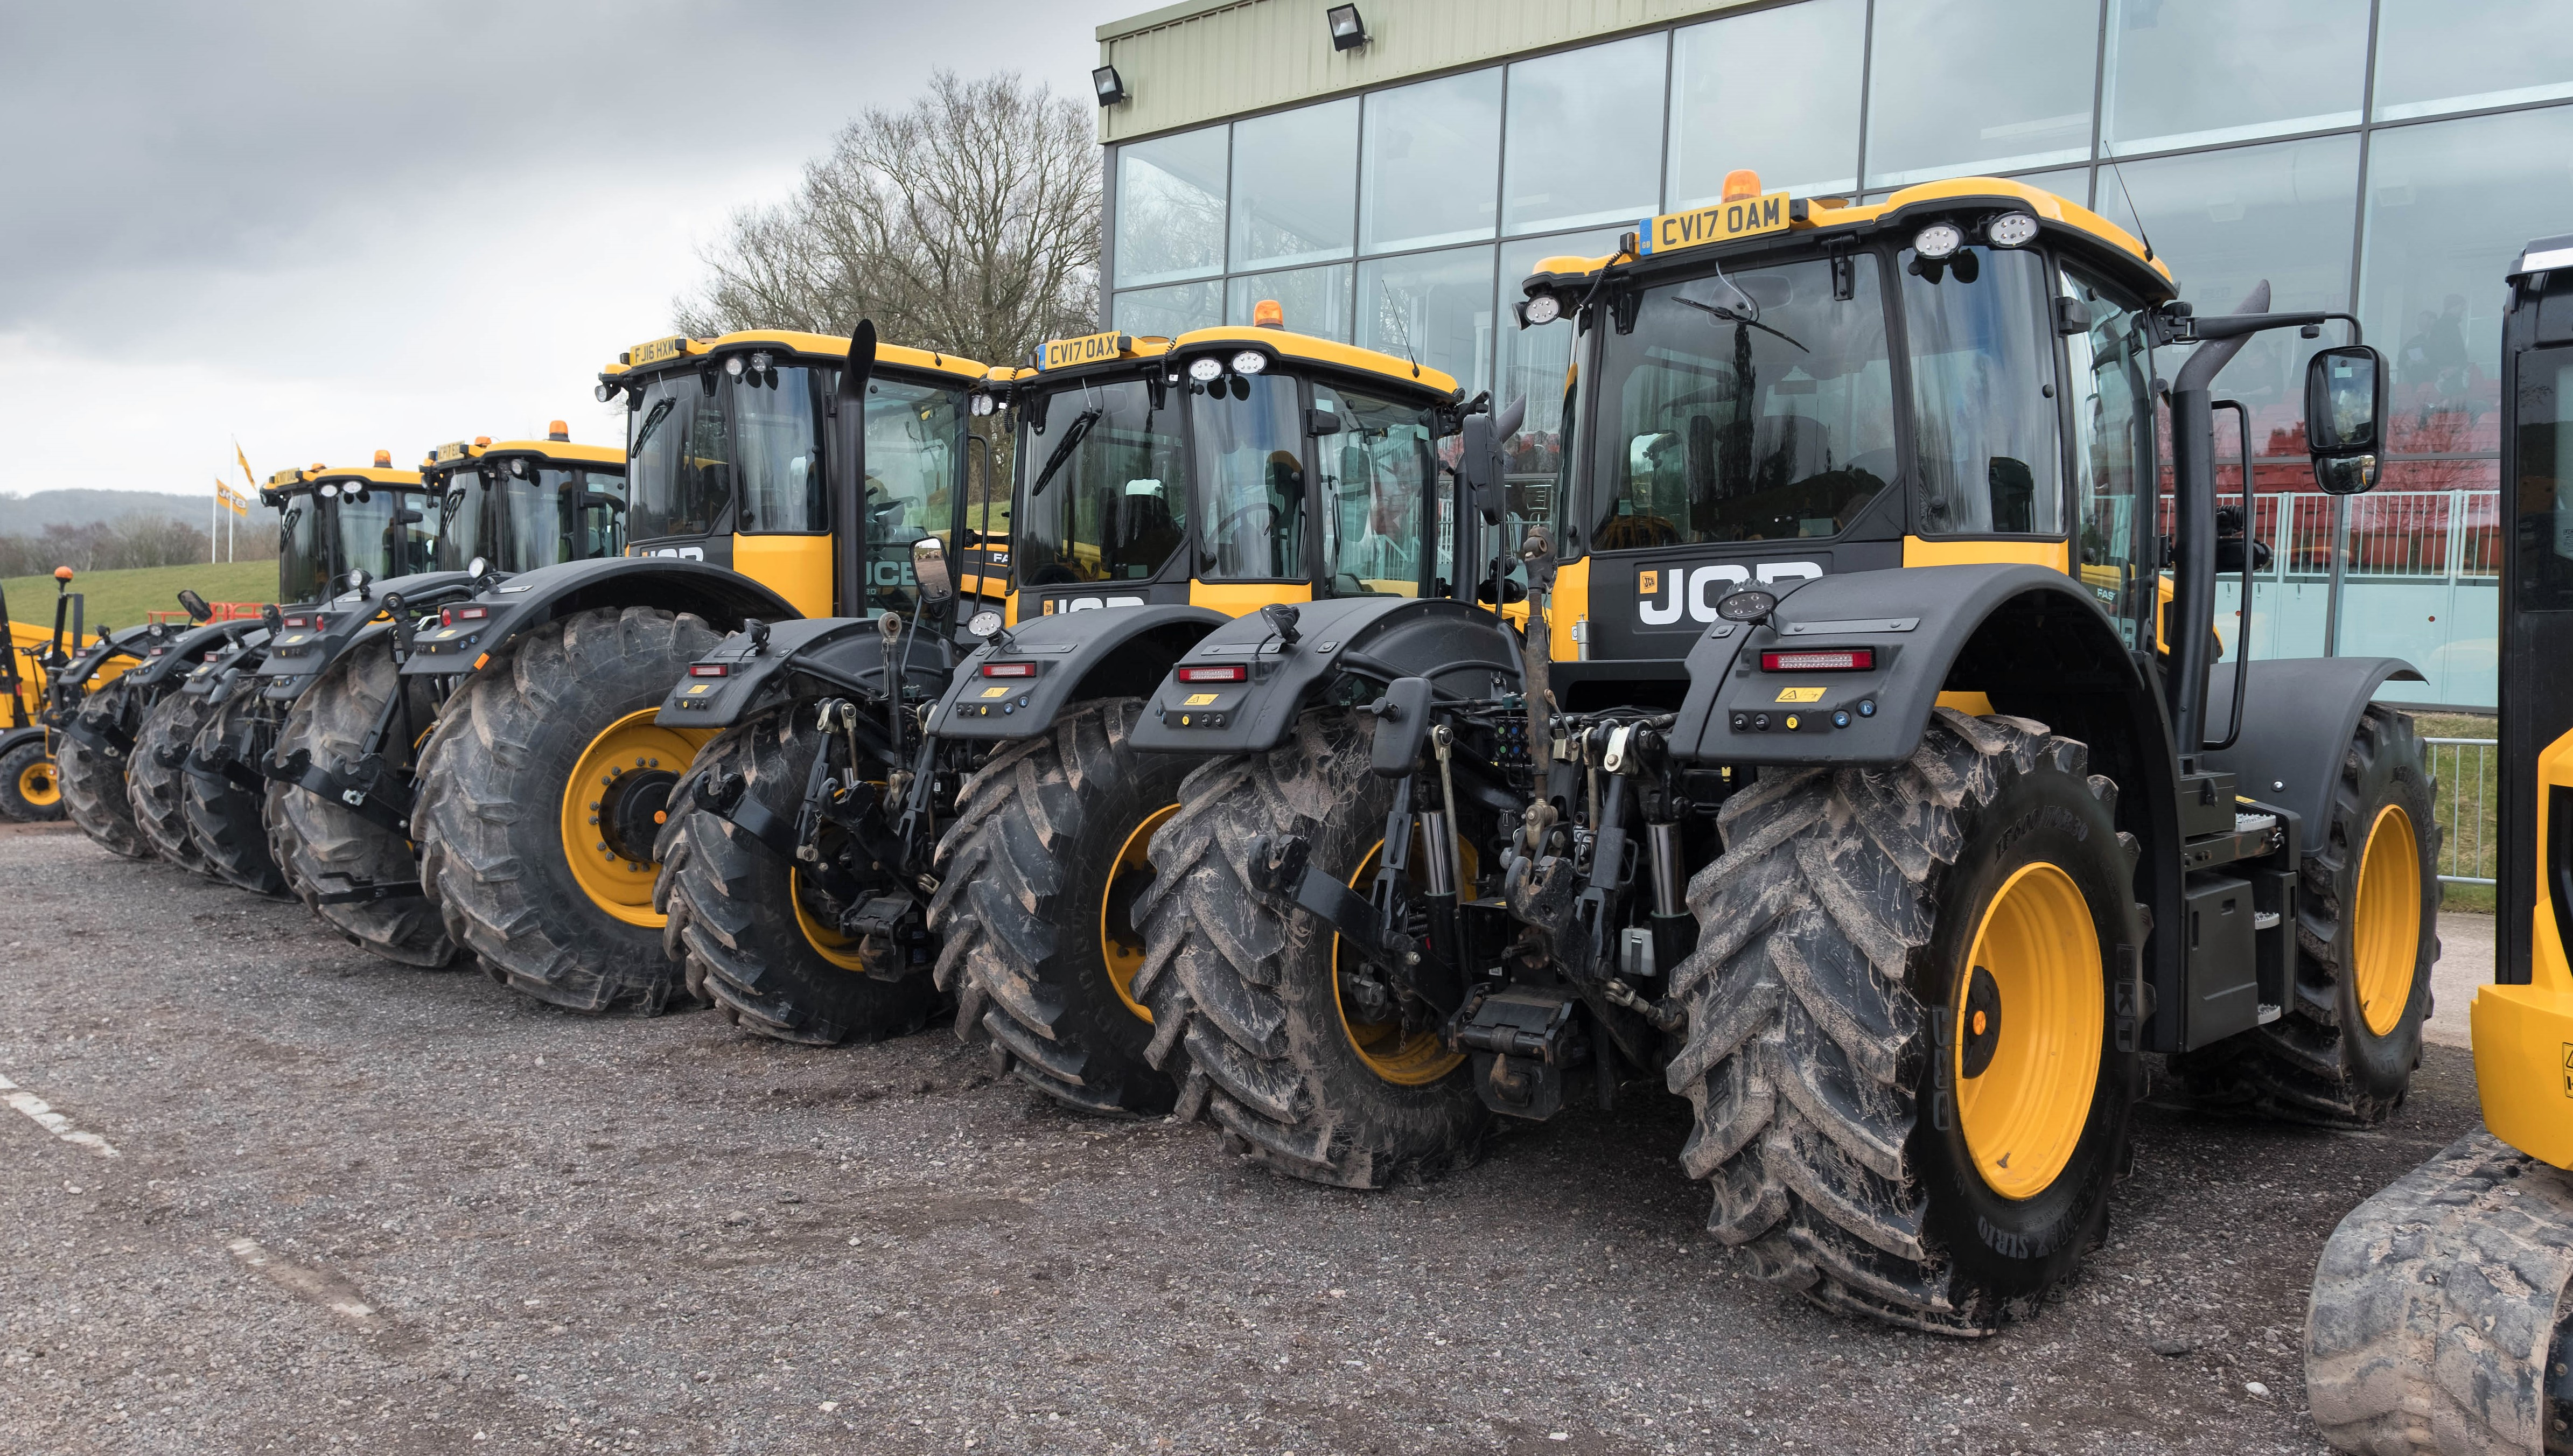 jcb report Heavy machinery manufacturer jcb reported record annual results today which show revenues up 37% in 2012 compared to 2011.